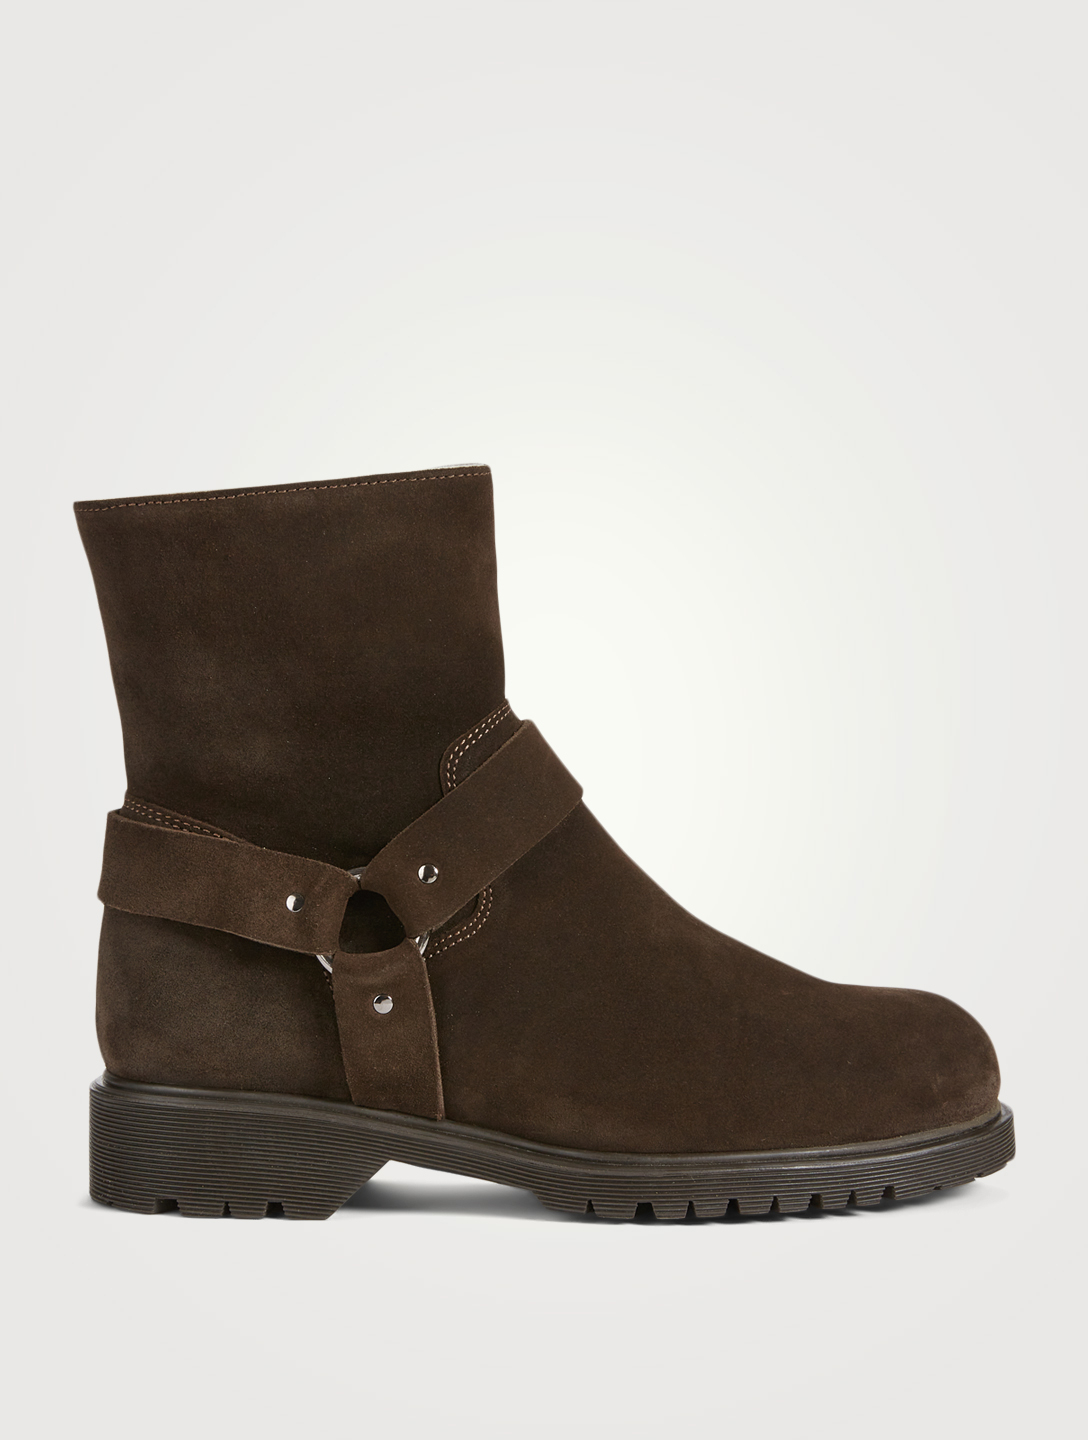 LA CANADIENNE Holden Suede And Shearling Ankle Boots Women's Brown